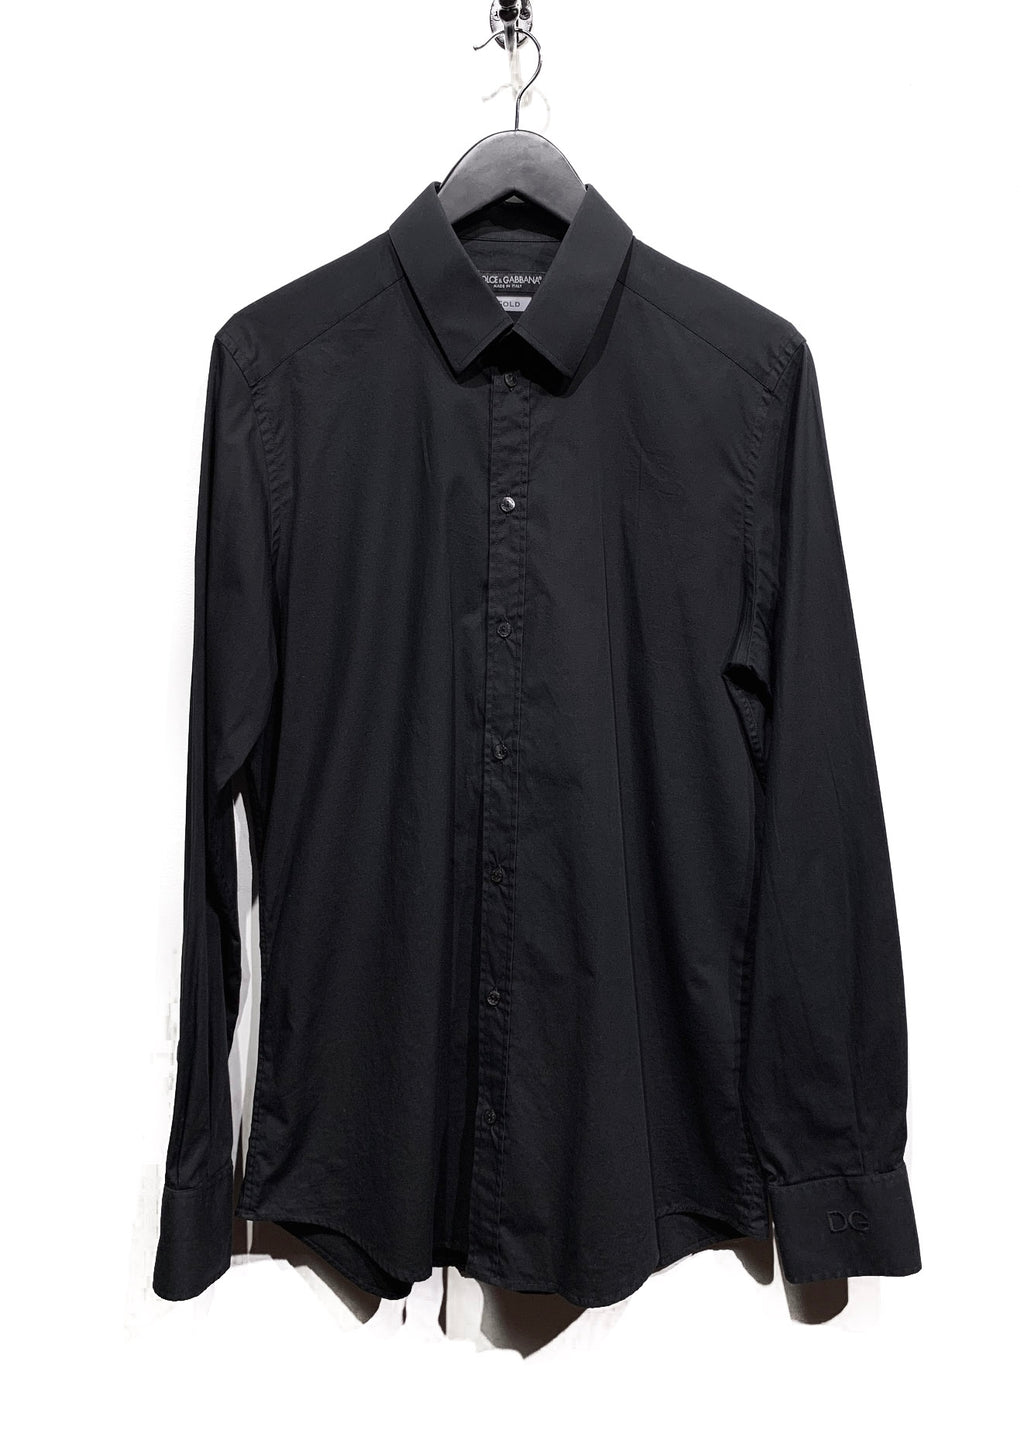 Dolce & Gabbana Black Gold Fit Stretched Dress Shirt